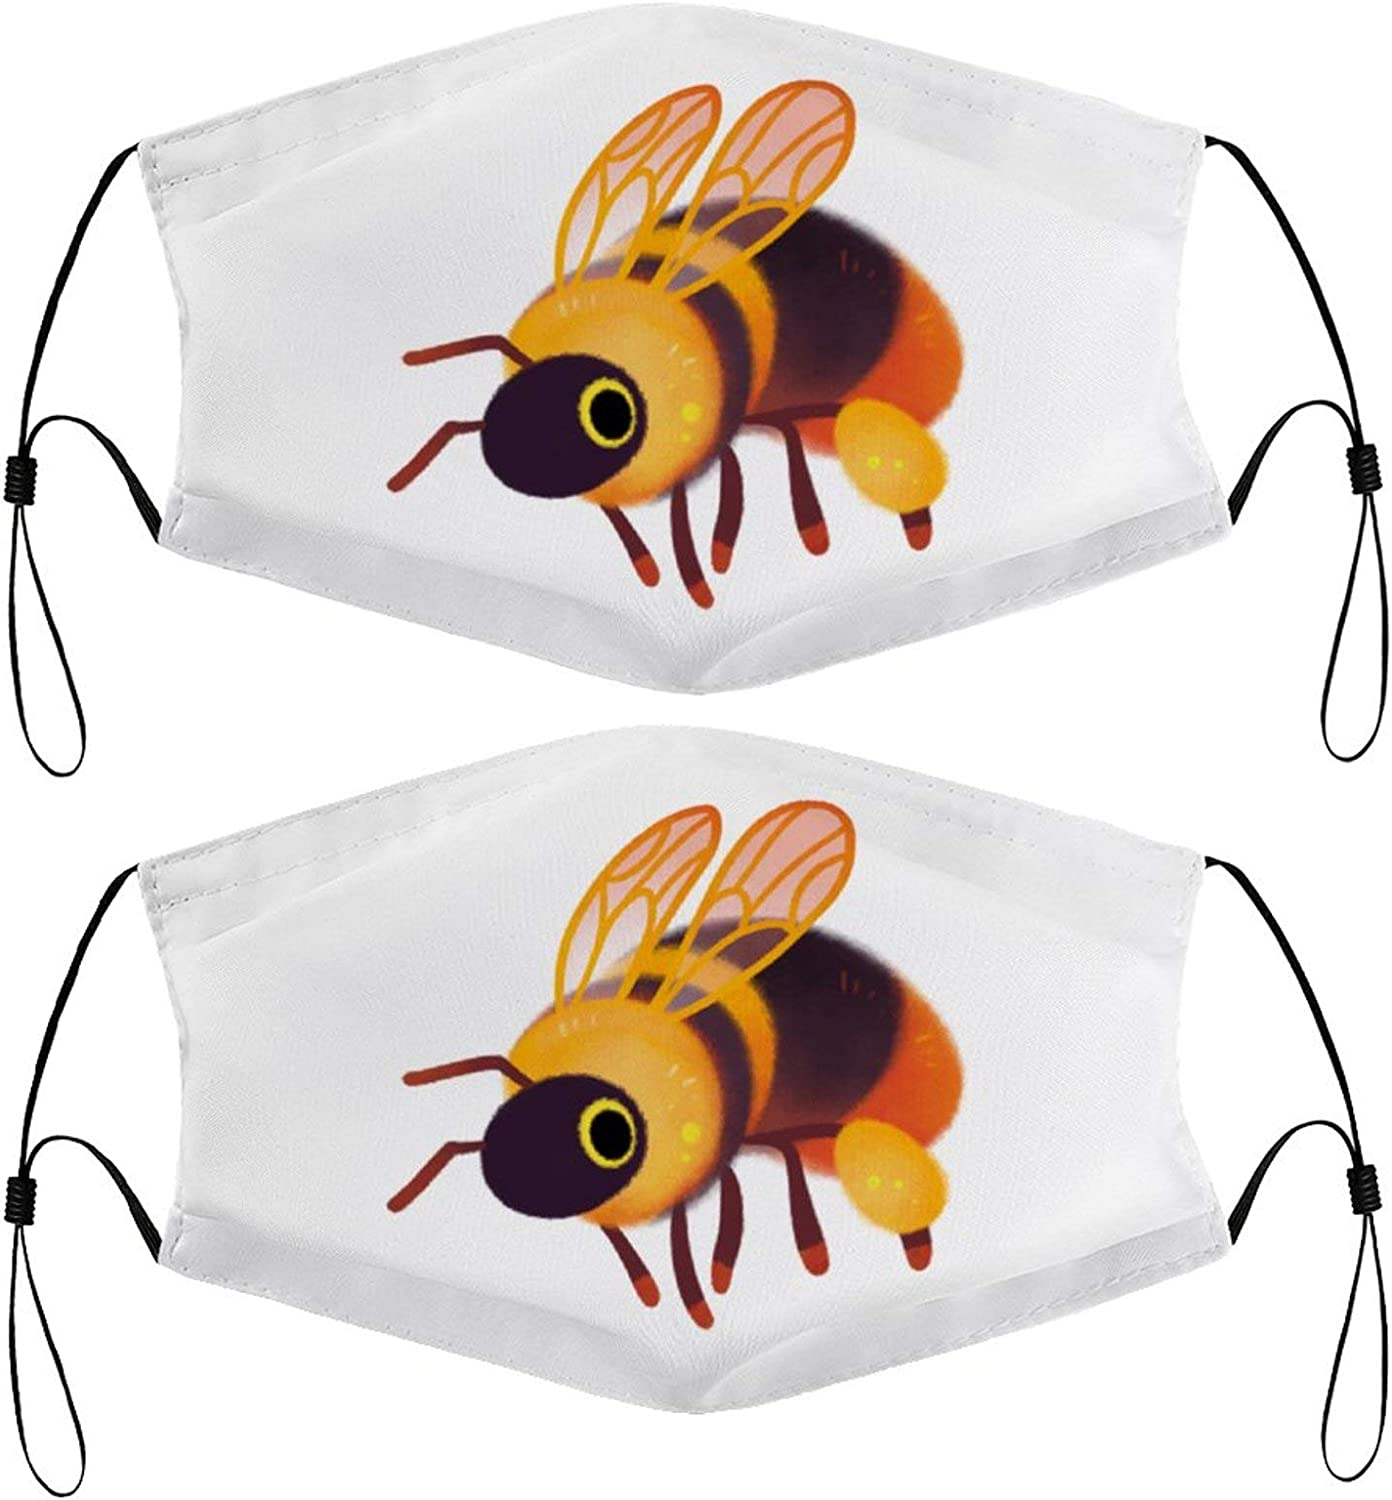 Redtail Honeybee Kids Face Masks Set of 2 with 4 Filters Washable Reusable Breathable Black Cloth Bandanas Scarf for Unisex Boys Girls